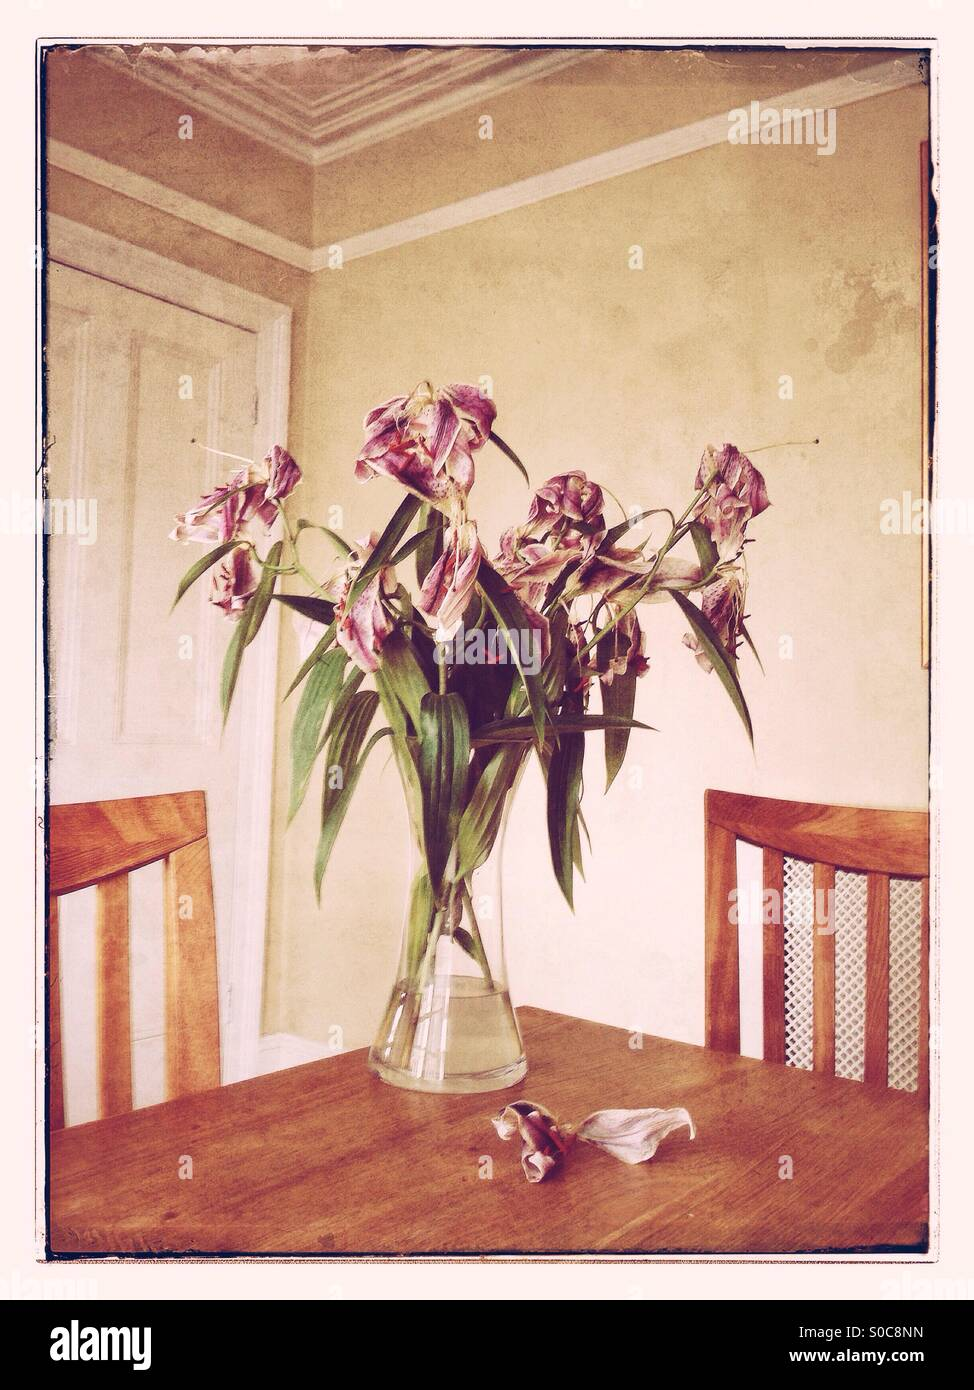 A flower vase of dead lilies sitting on a wooden table a flower vase of dead lilies sitting on a wooden table surrounded by two chairs inside a dining room a vintage effect photograph reviewsmspy